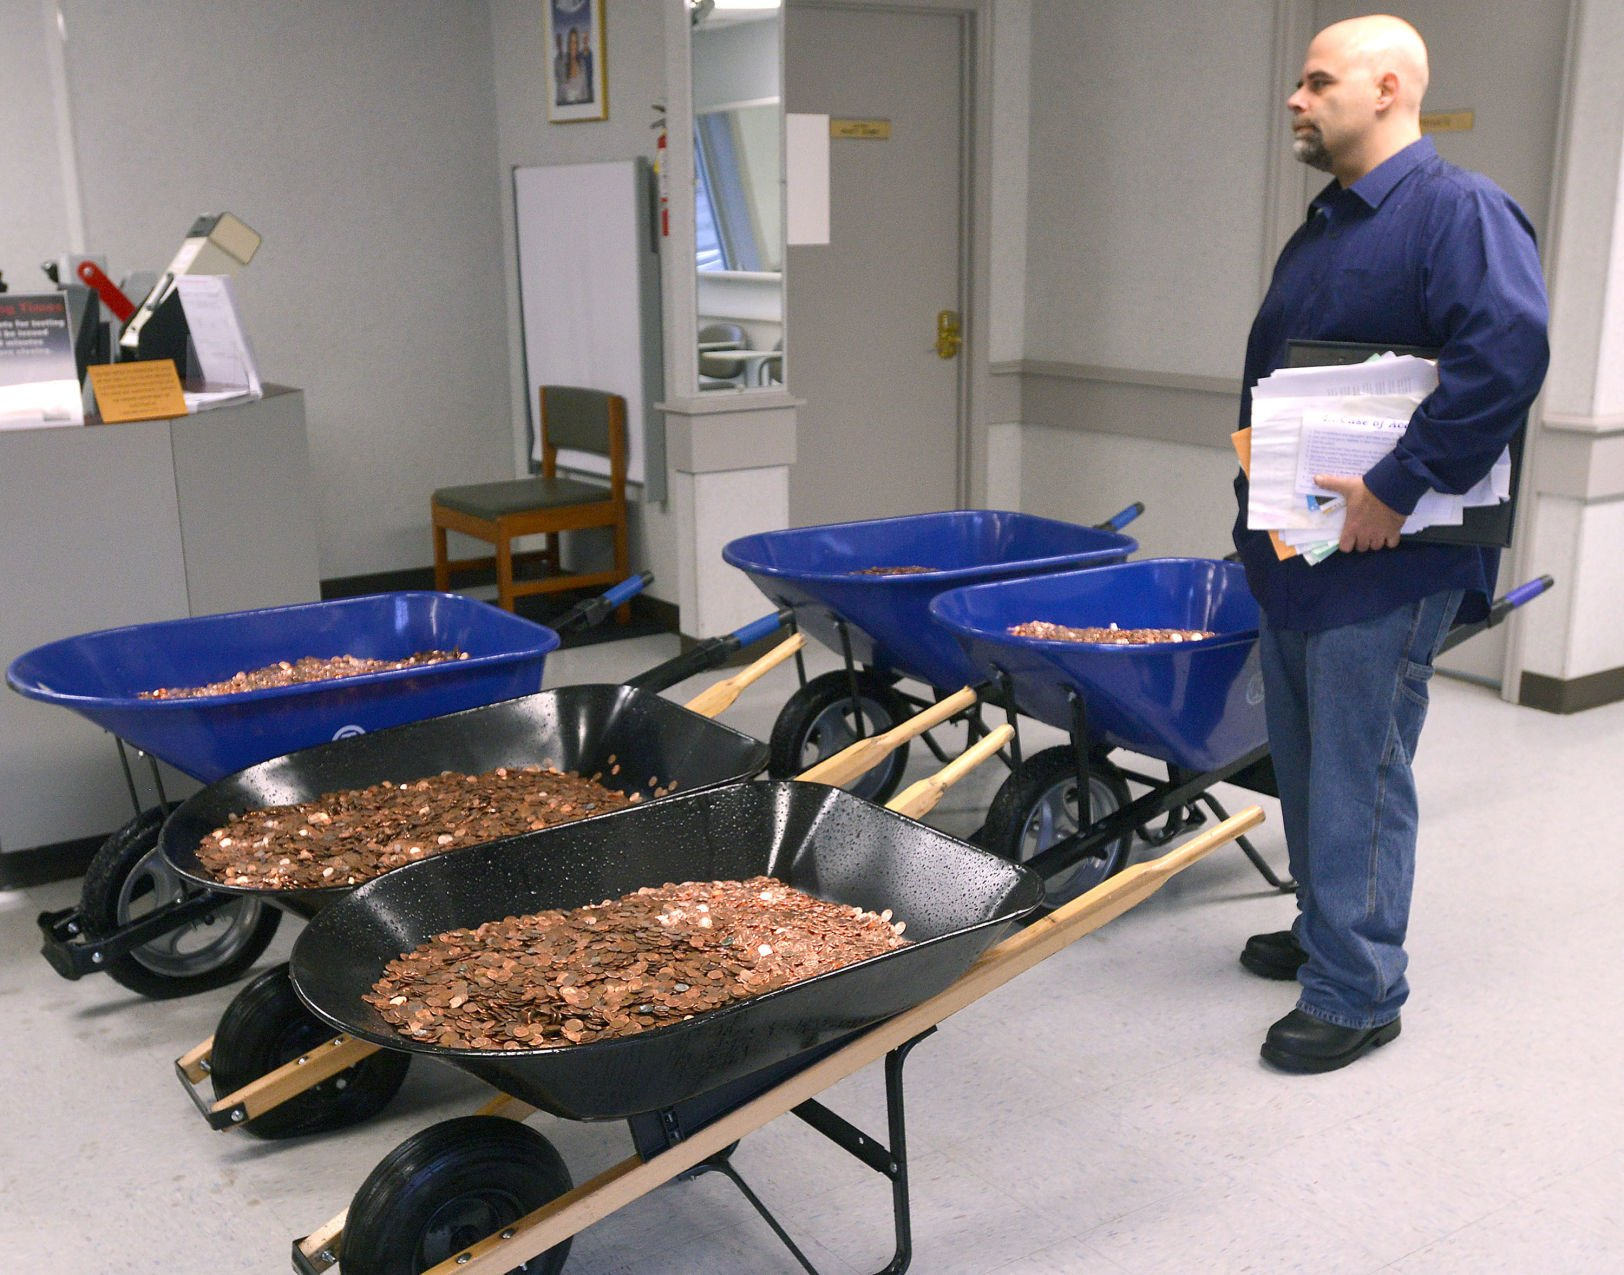 Virginia man spends $1,000 to deliver 300,000 pennies to Lebanon ...